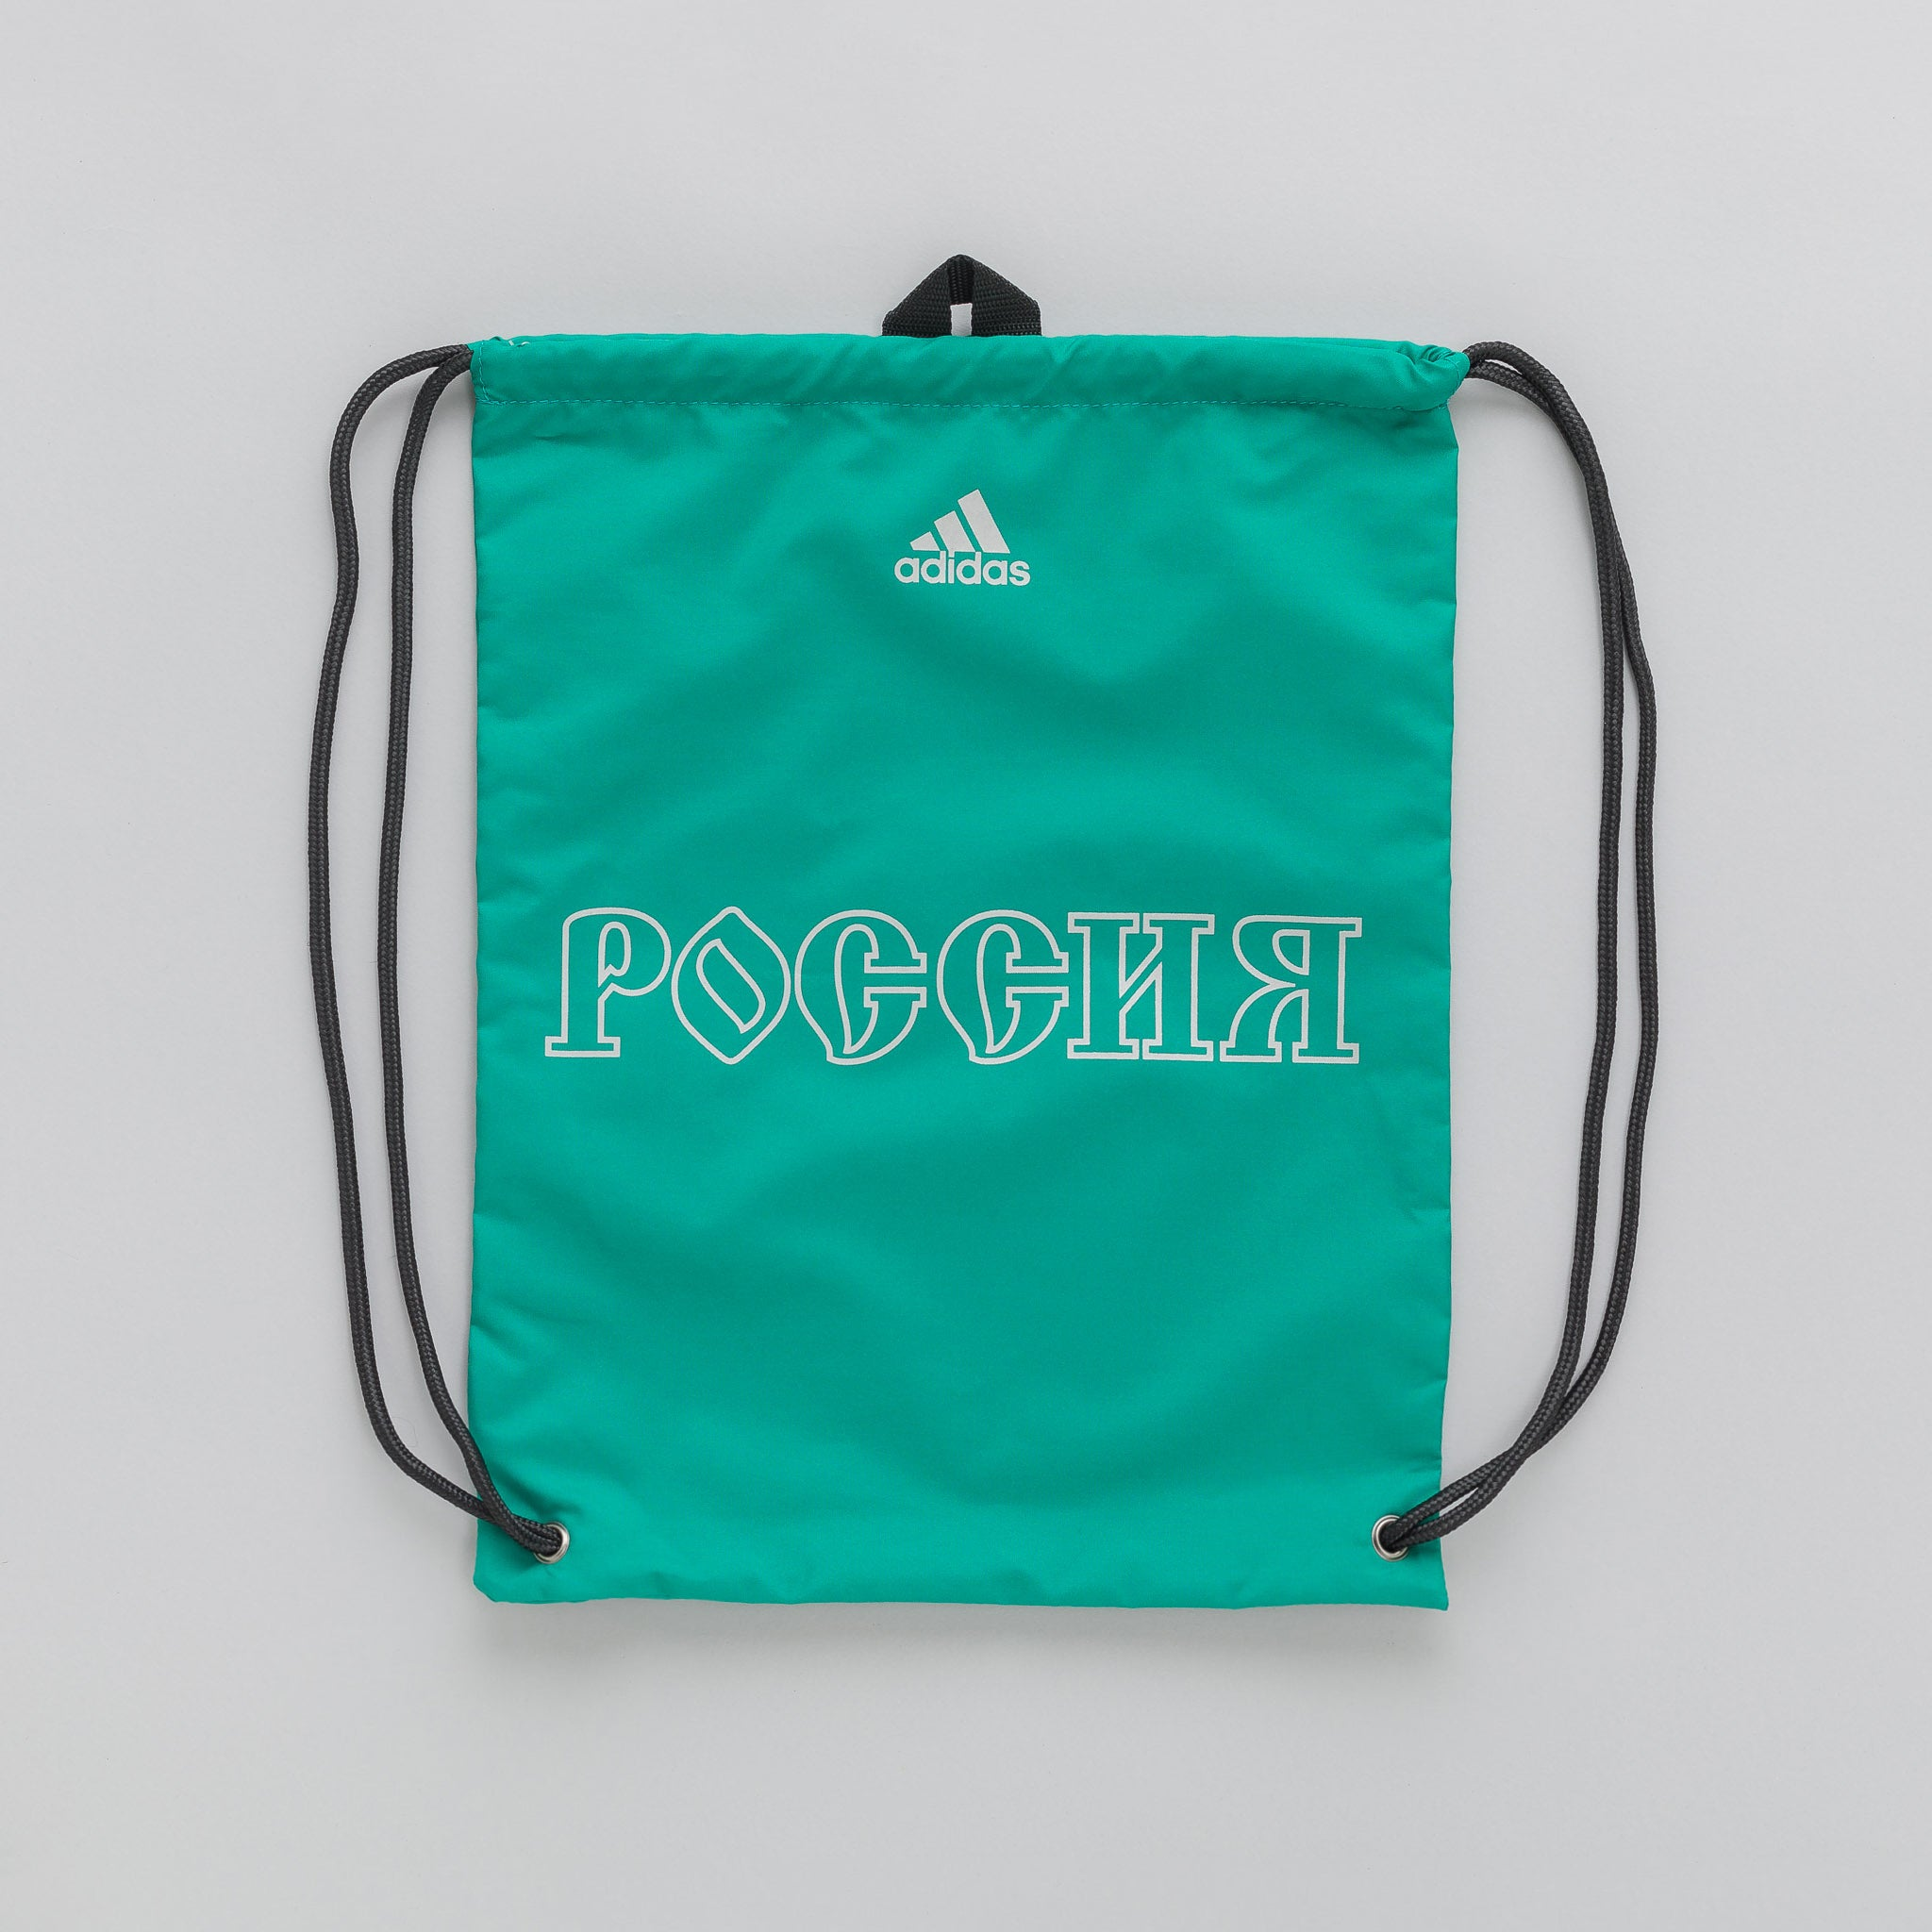 x adidas Gymsack in Teal